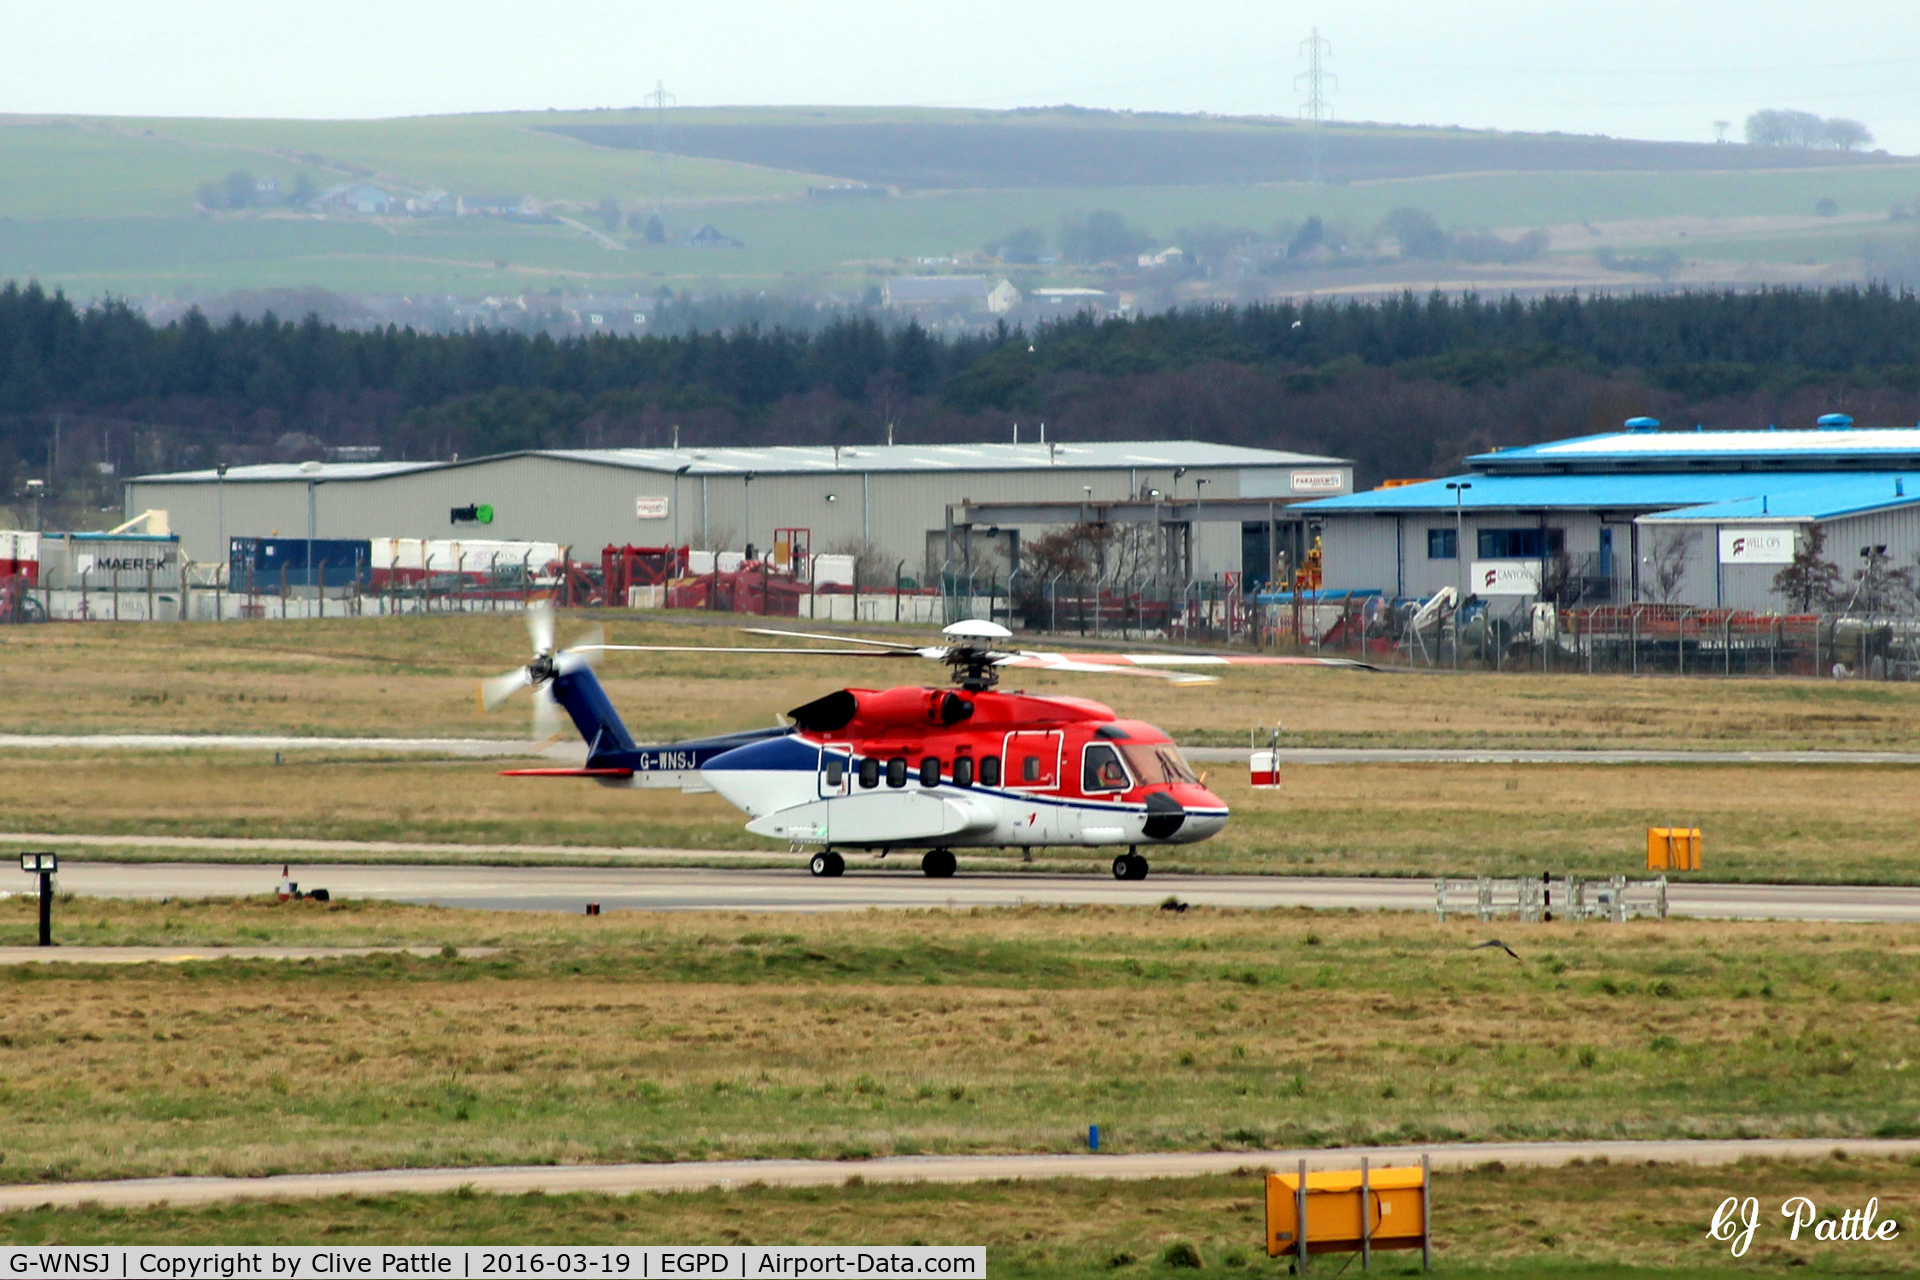 G-WNSJ, 2012 Sikorsky S-92A C/N 920185, Taxy out at Aberdeen EGPD